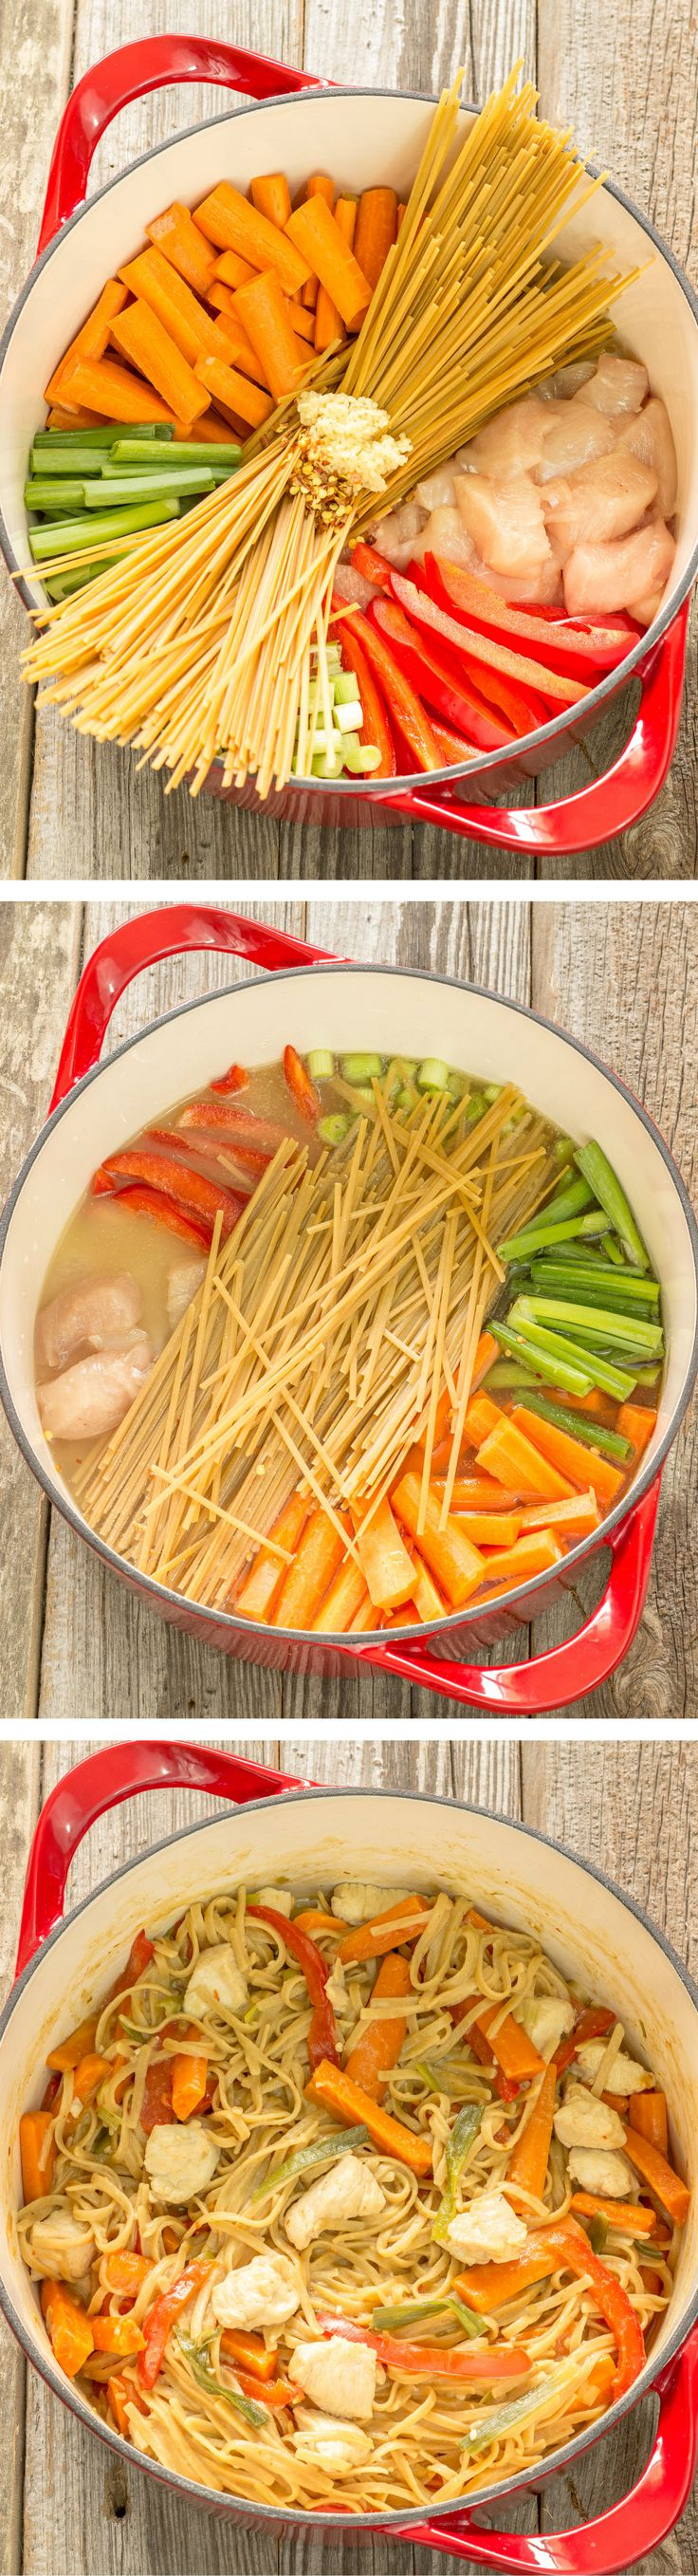 One-pot wonder chicken lo mein. I've made this twice now and it's super easy and yummy.